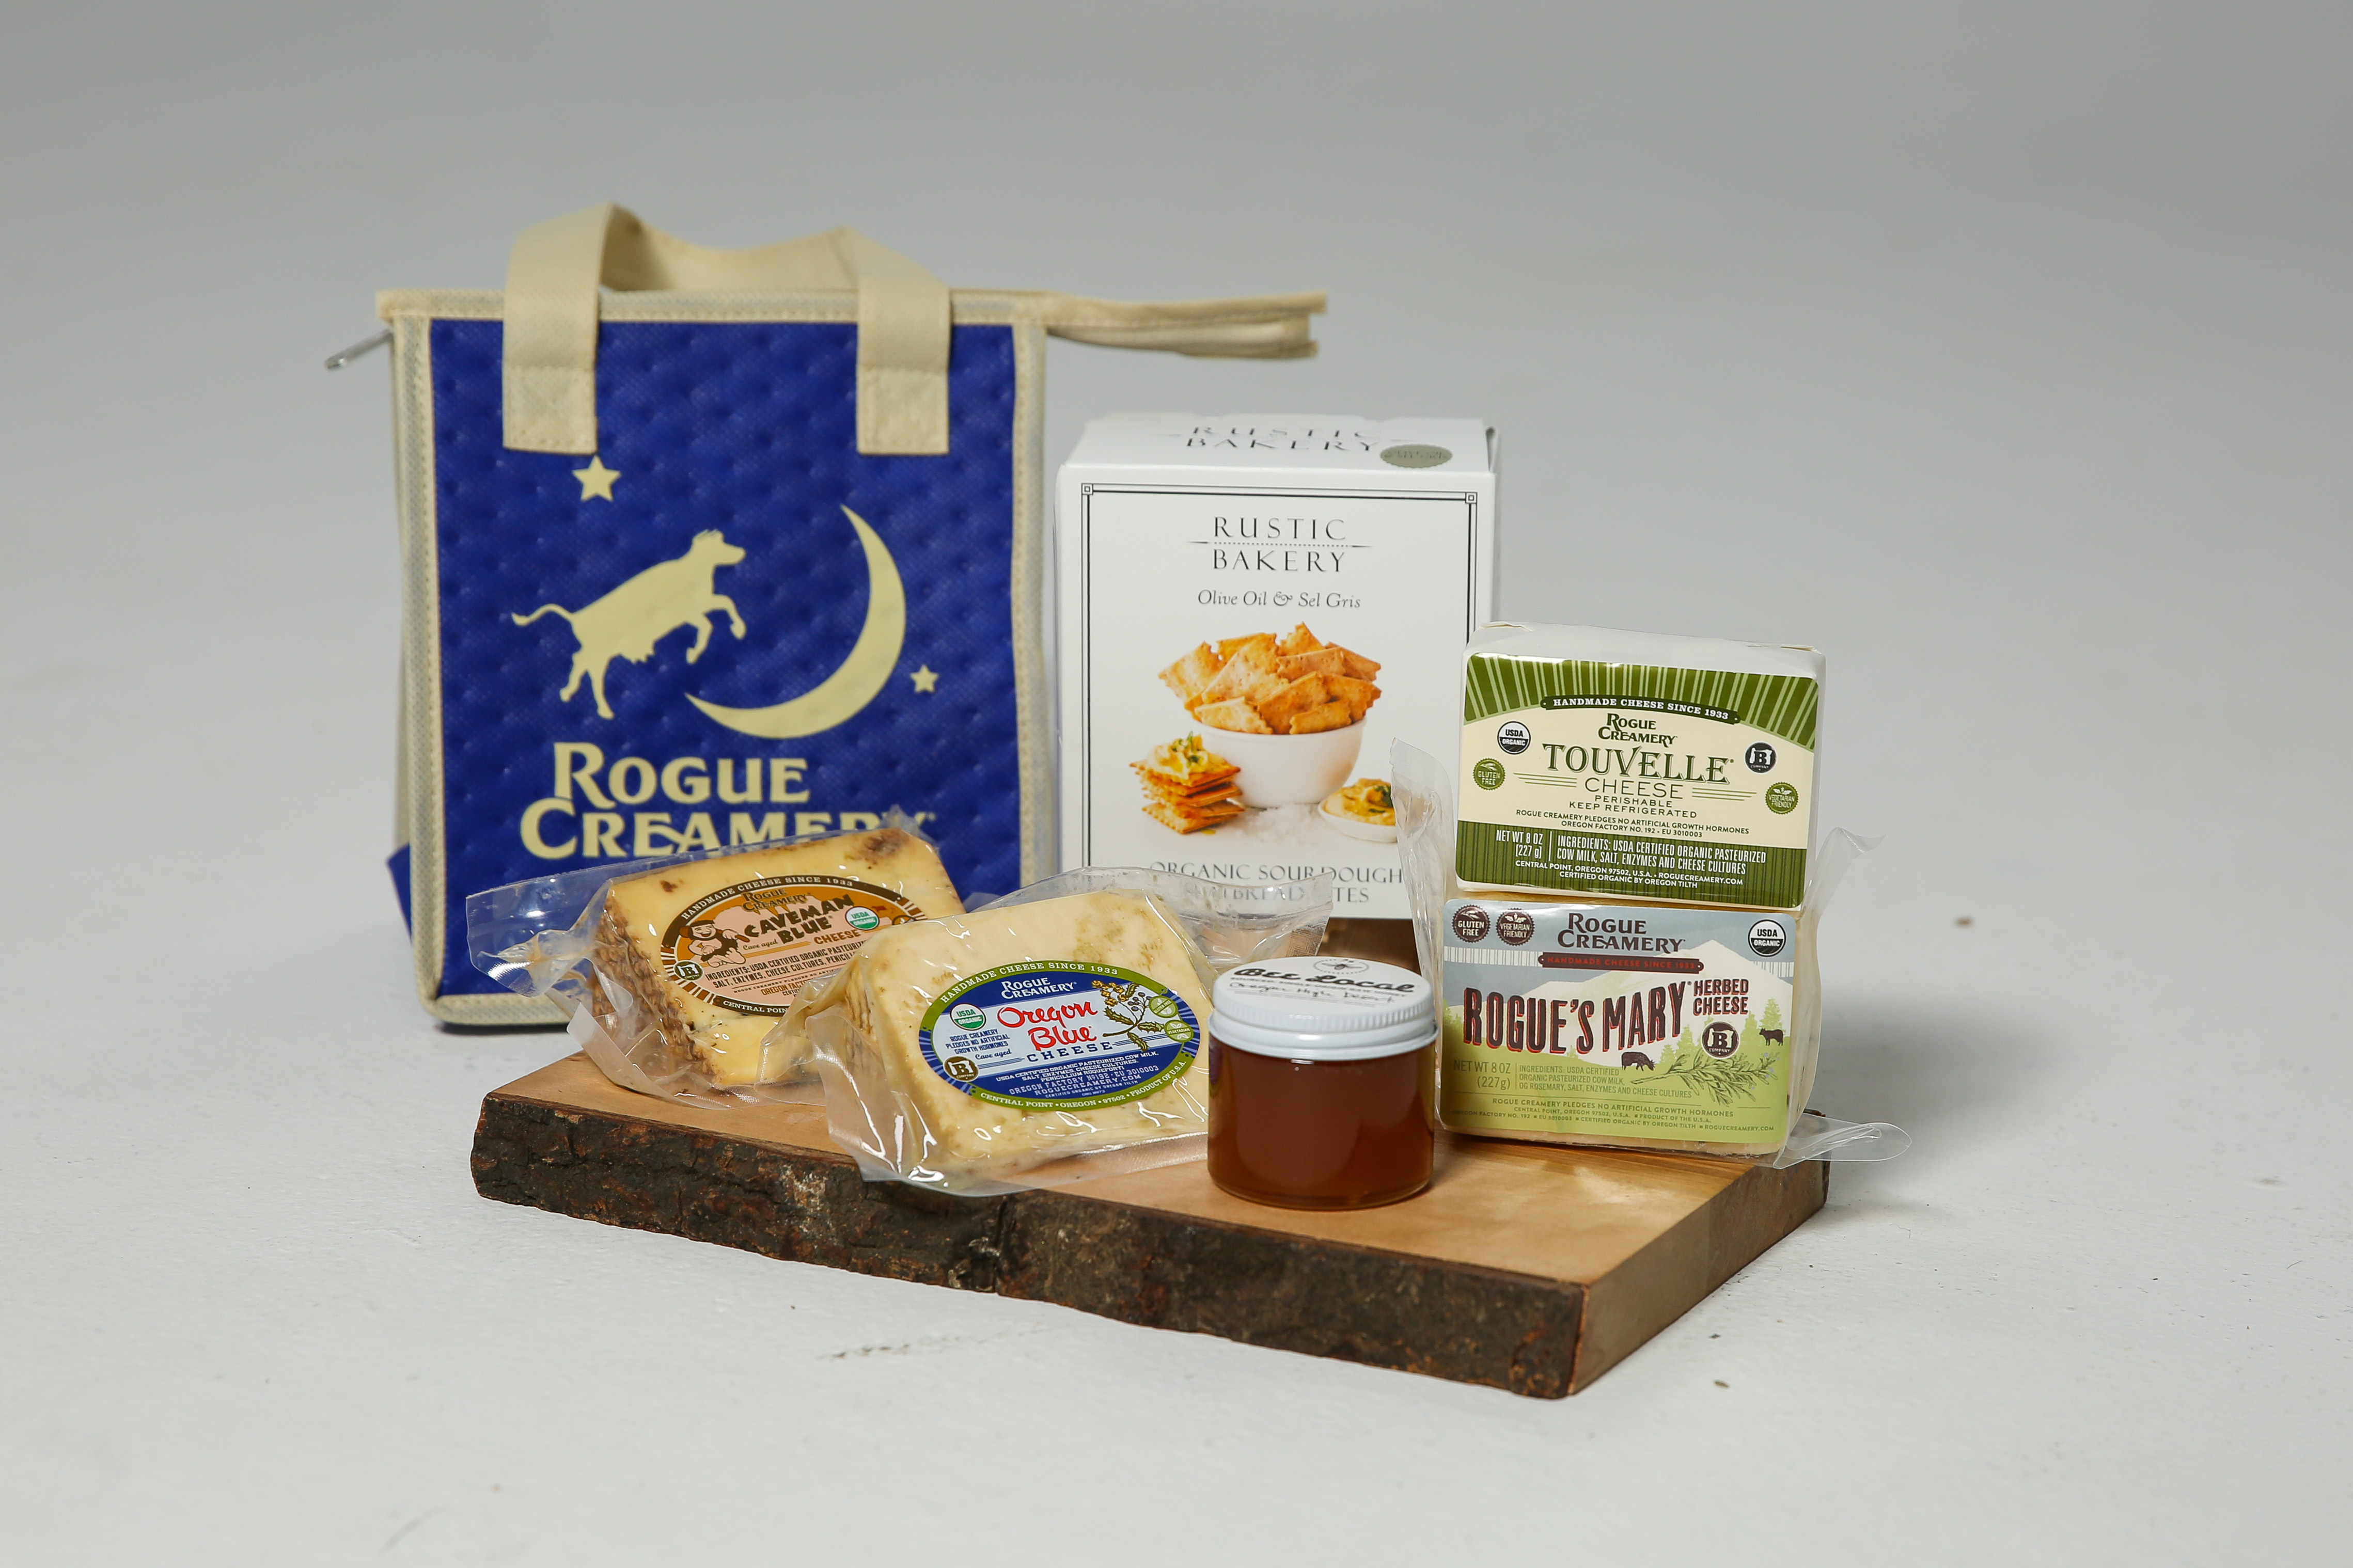 Rogue Creamery Cheese Party gift set